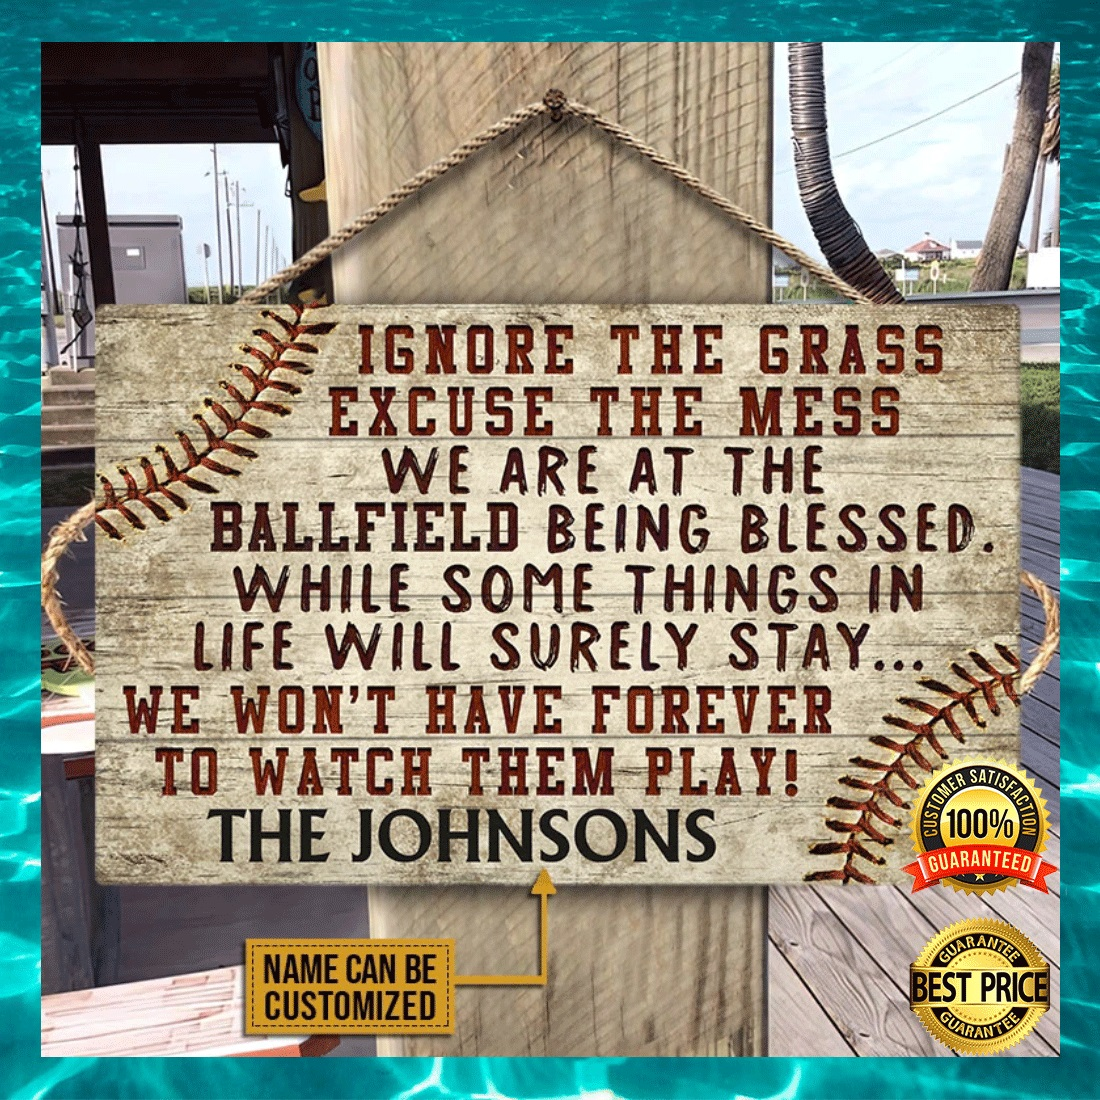 PERSONALIZED IGNORE THE GRASS EXCUSE THE MESS WE ARE AT THE BALLFIELD BEING BLESSED DOOR SIGN 4